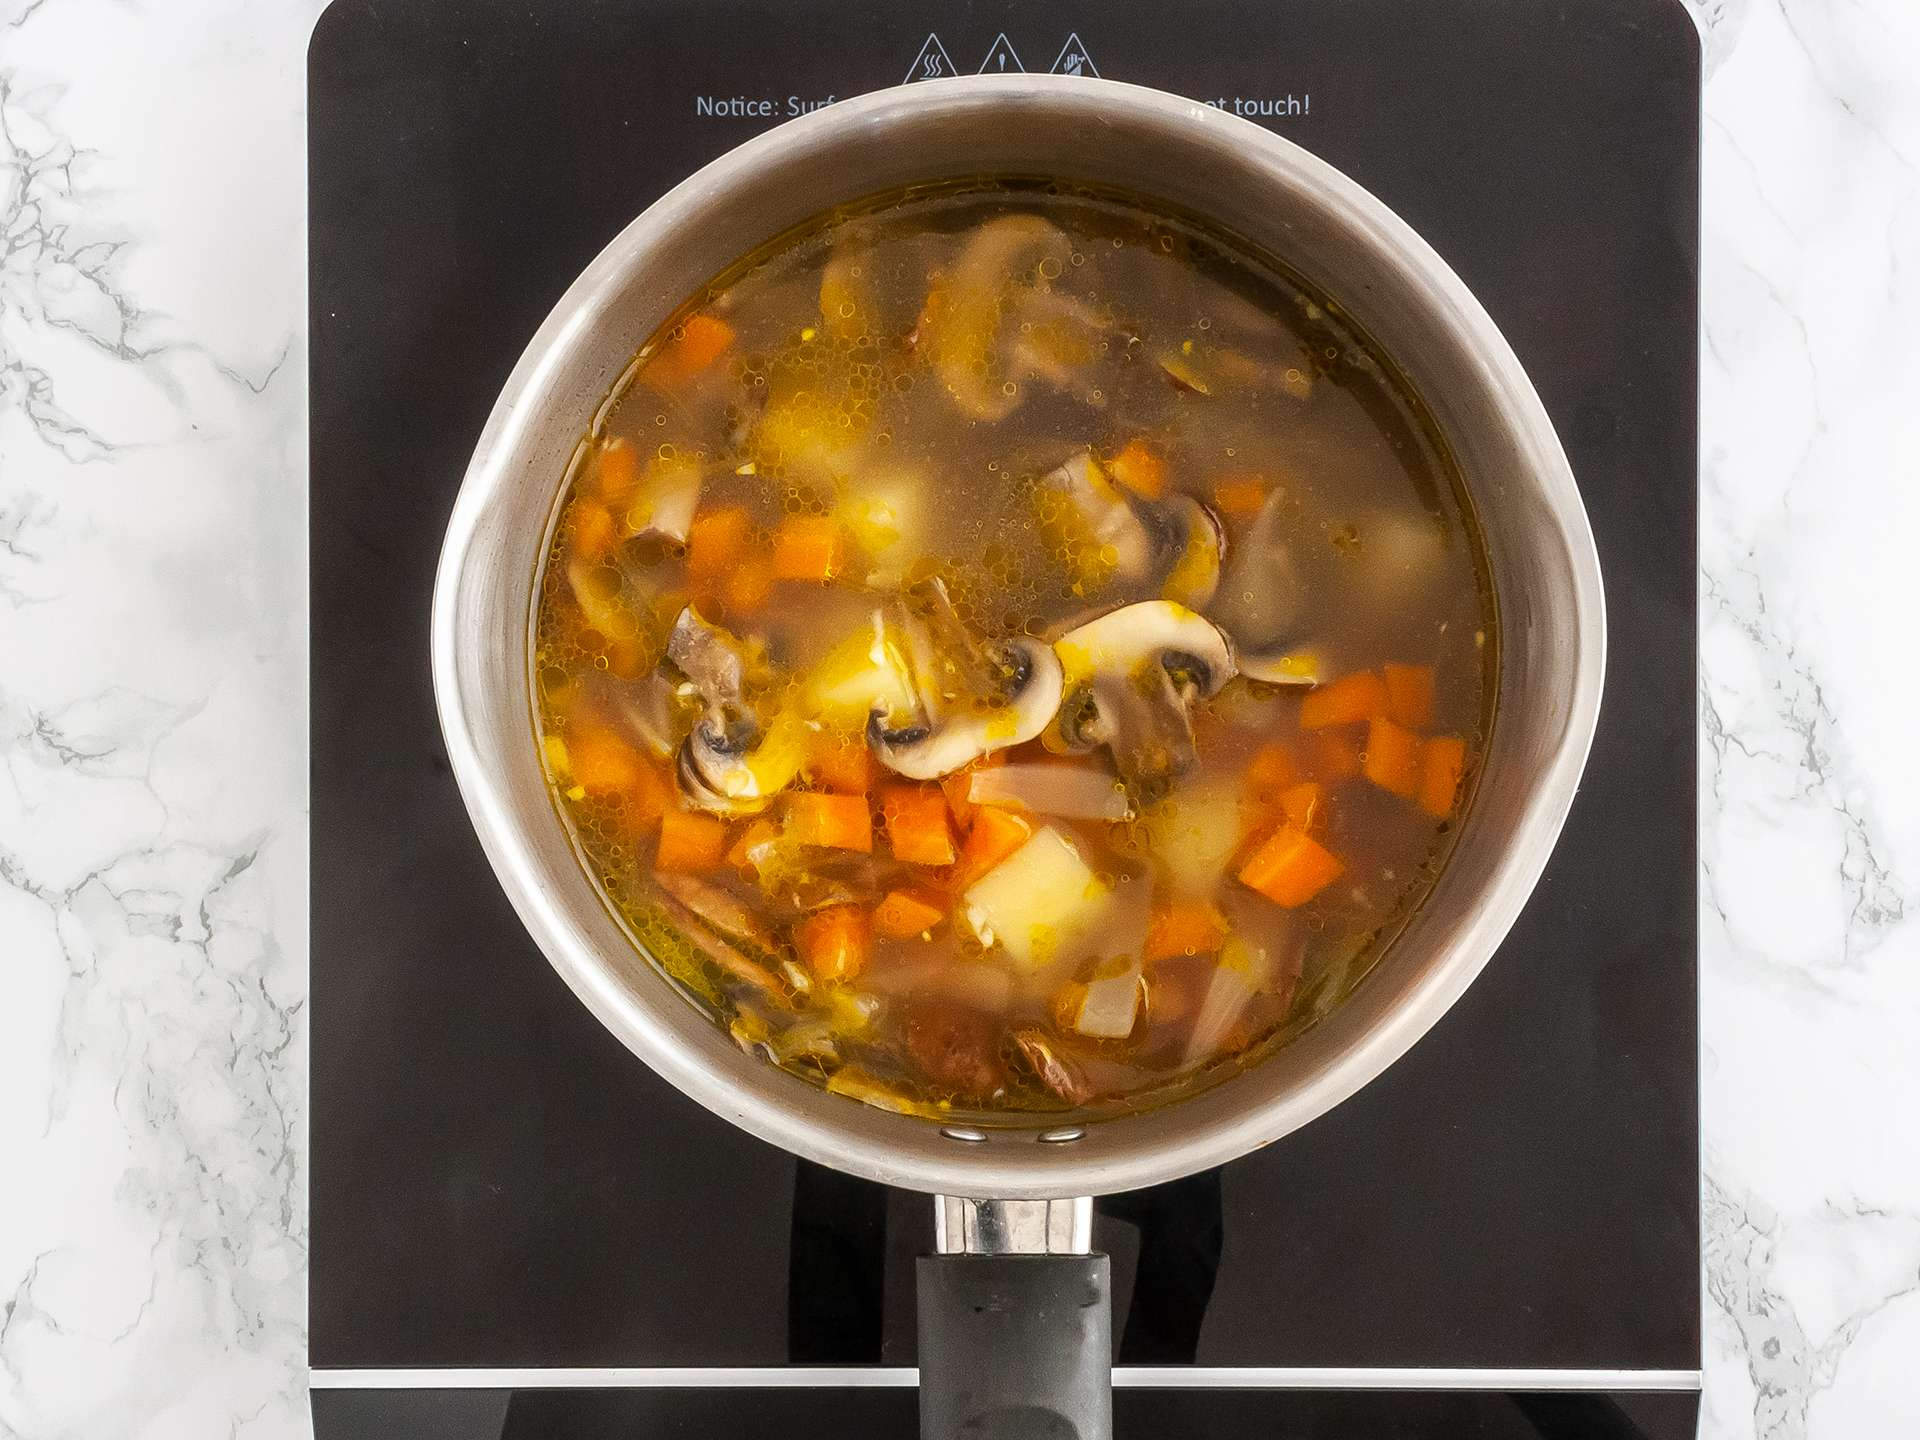 Cooked broth